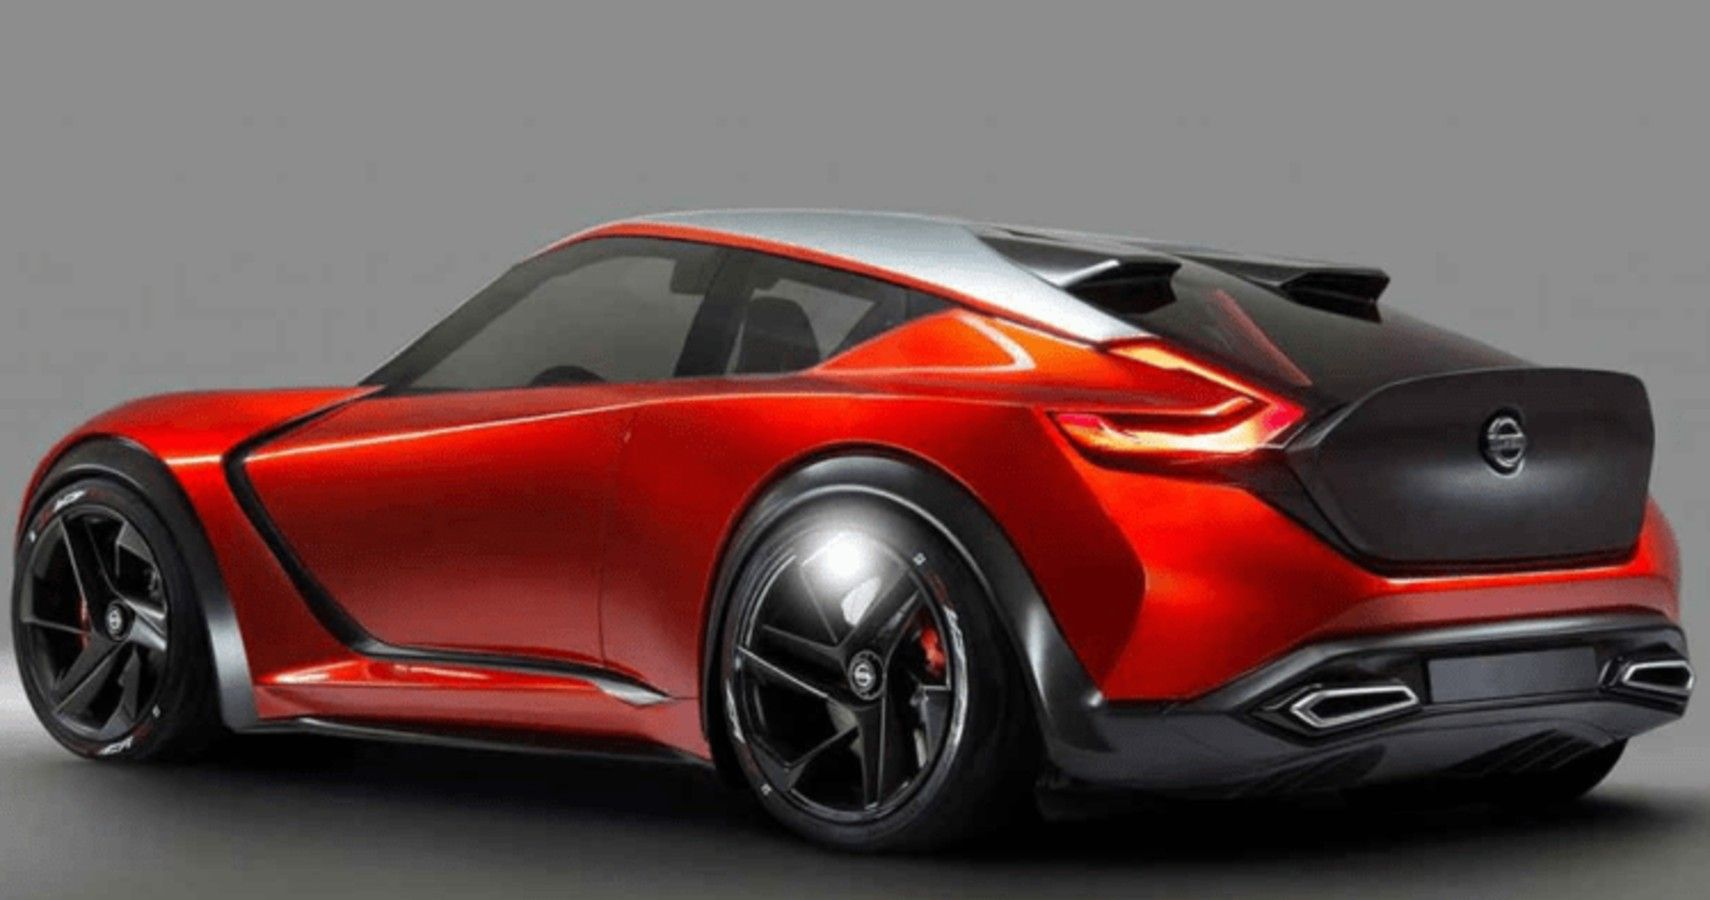 New Nissan Z To Be Powered By Twin Turbo Infiniti V6 | HotCars